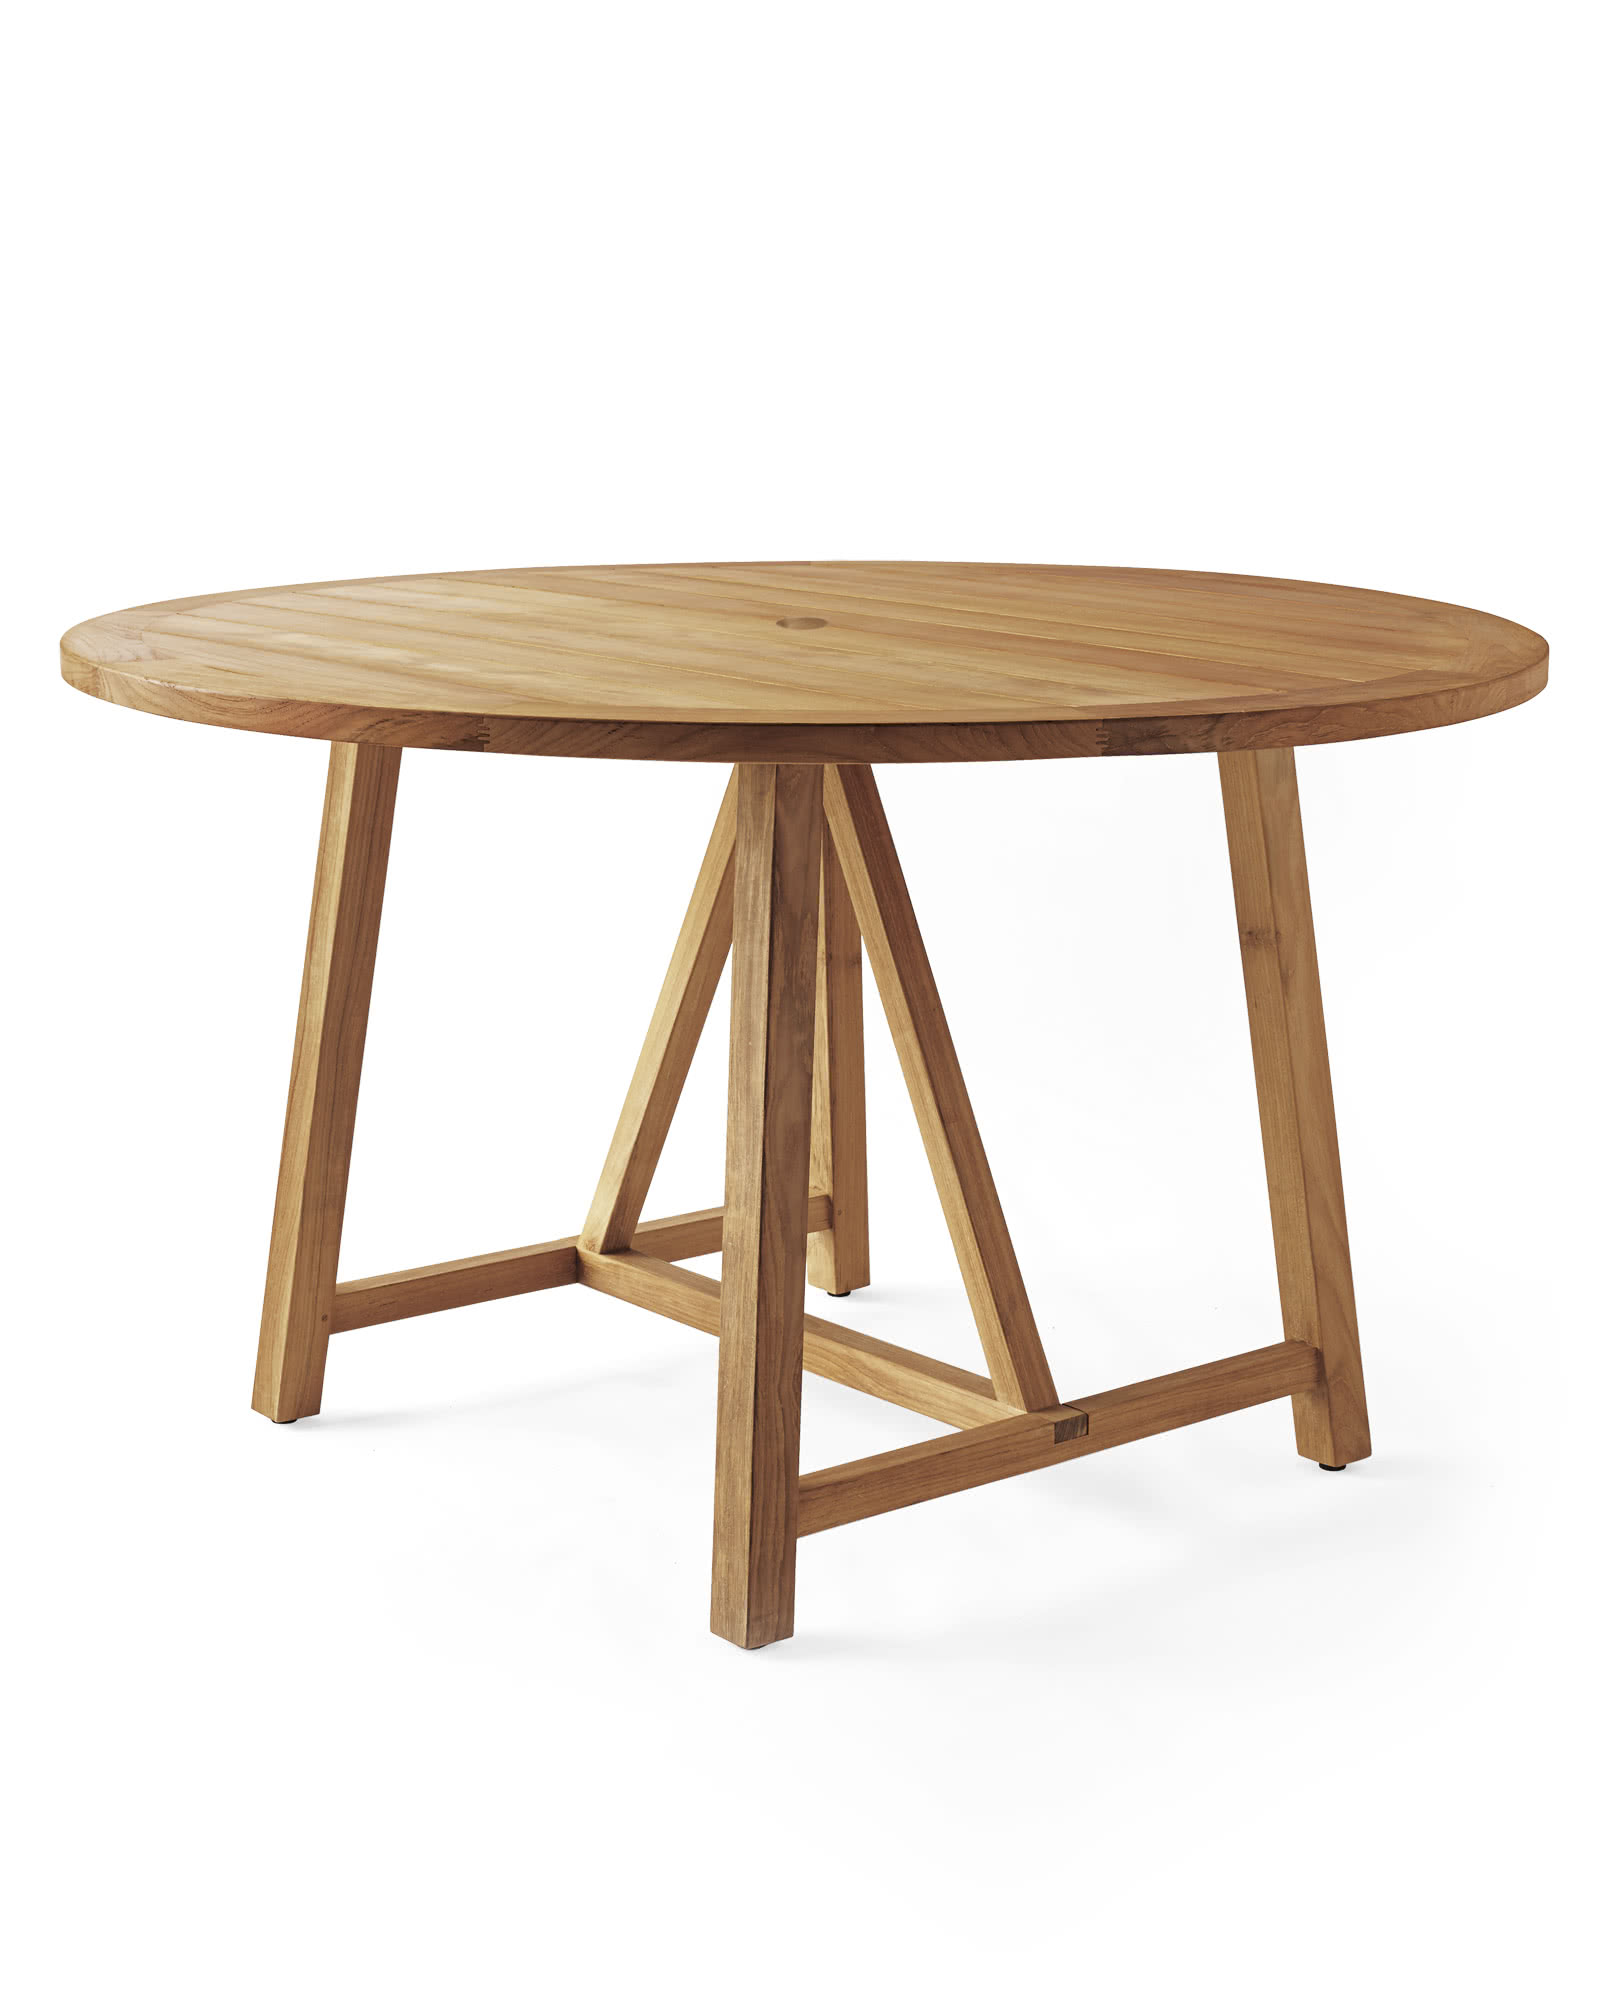 Crosby teak outdoor round dining table serena lily for Outdoor teak dining table